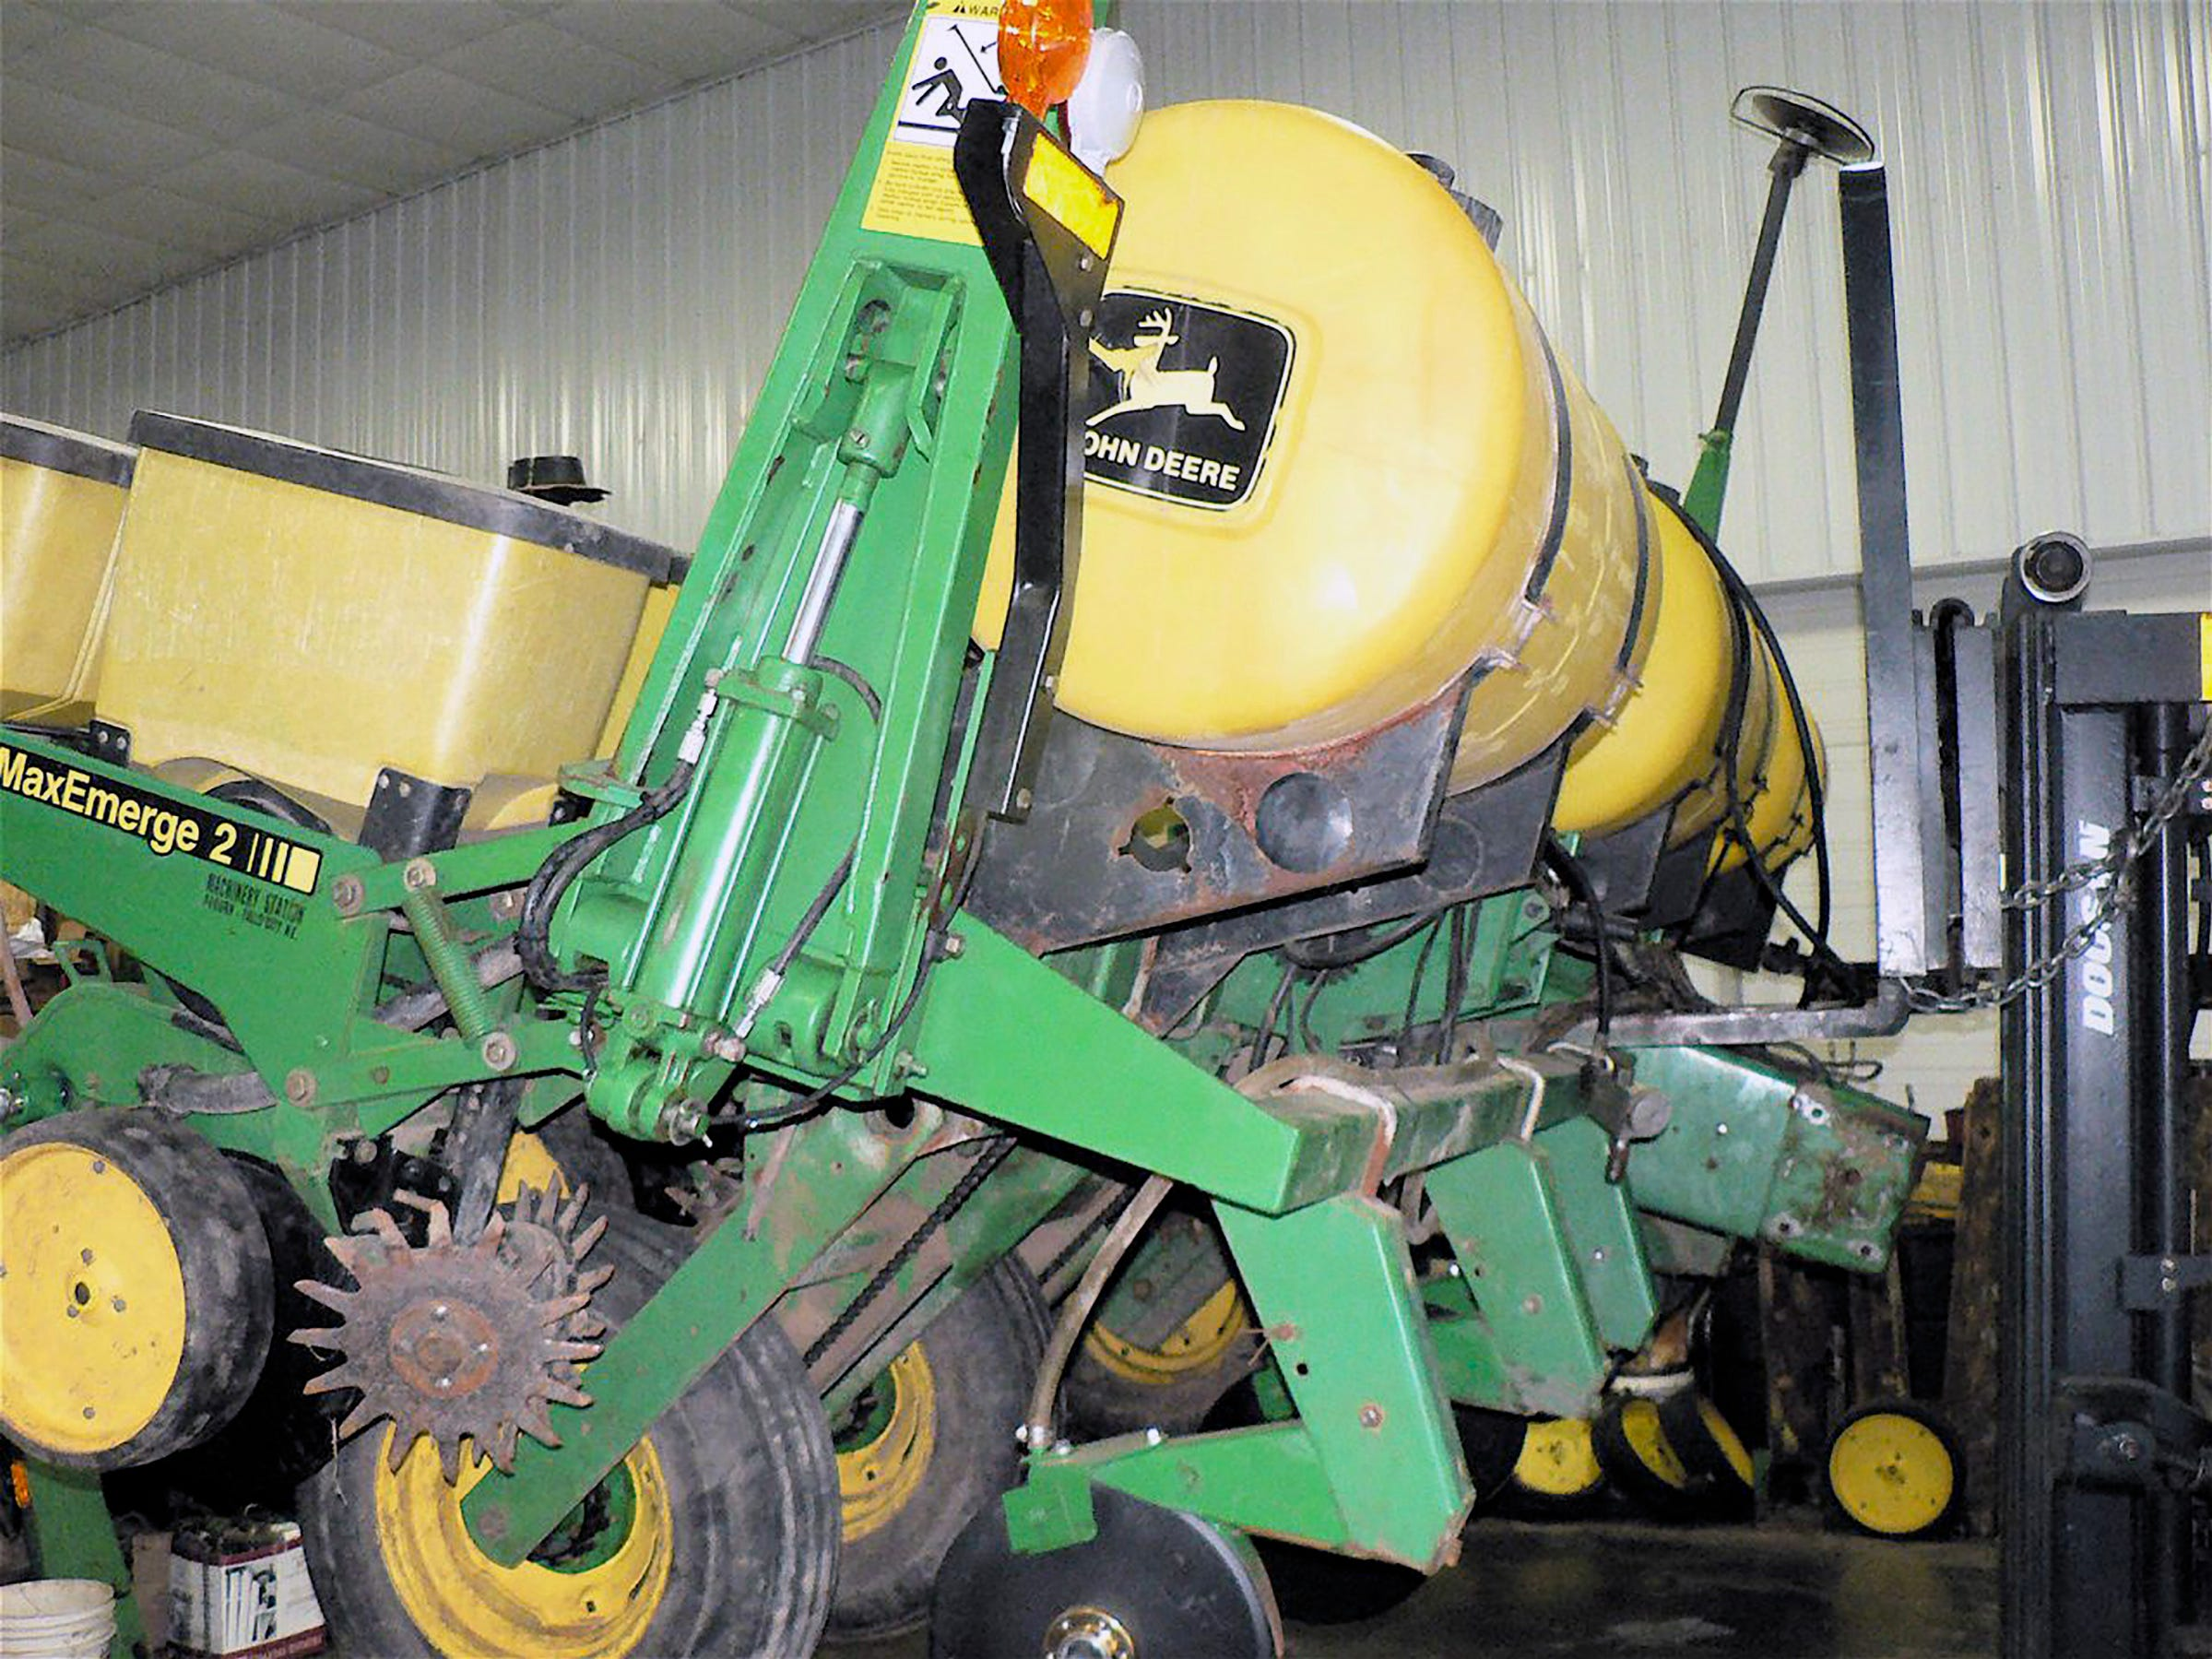 A six row planter on the hoist.